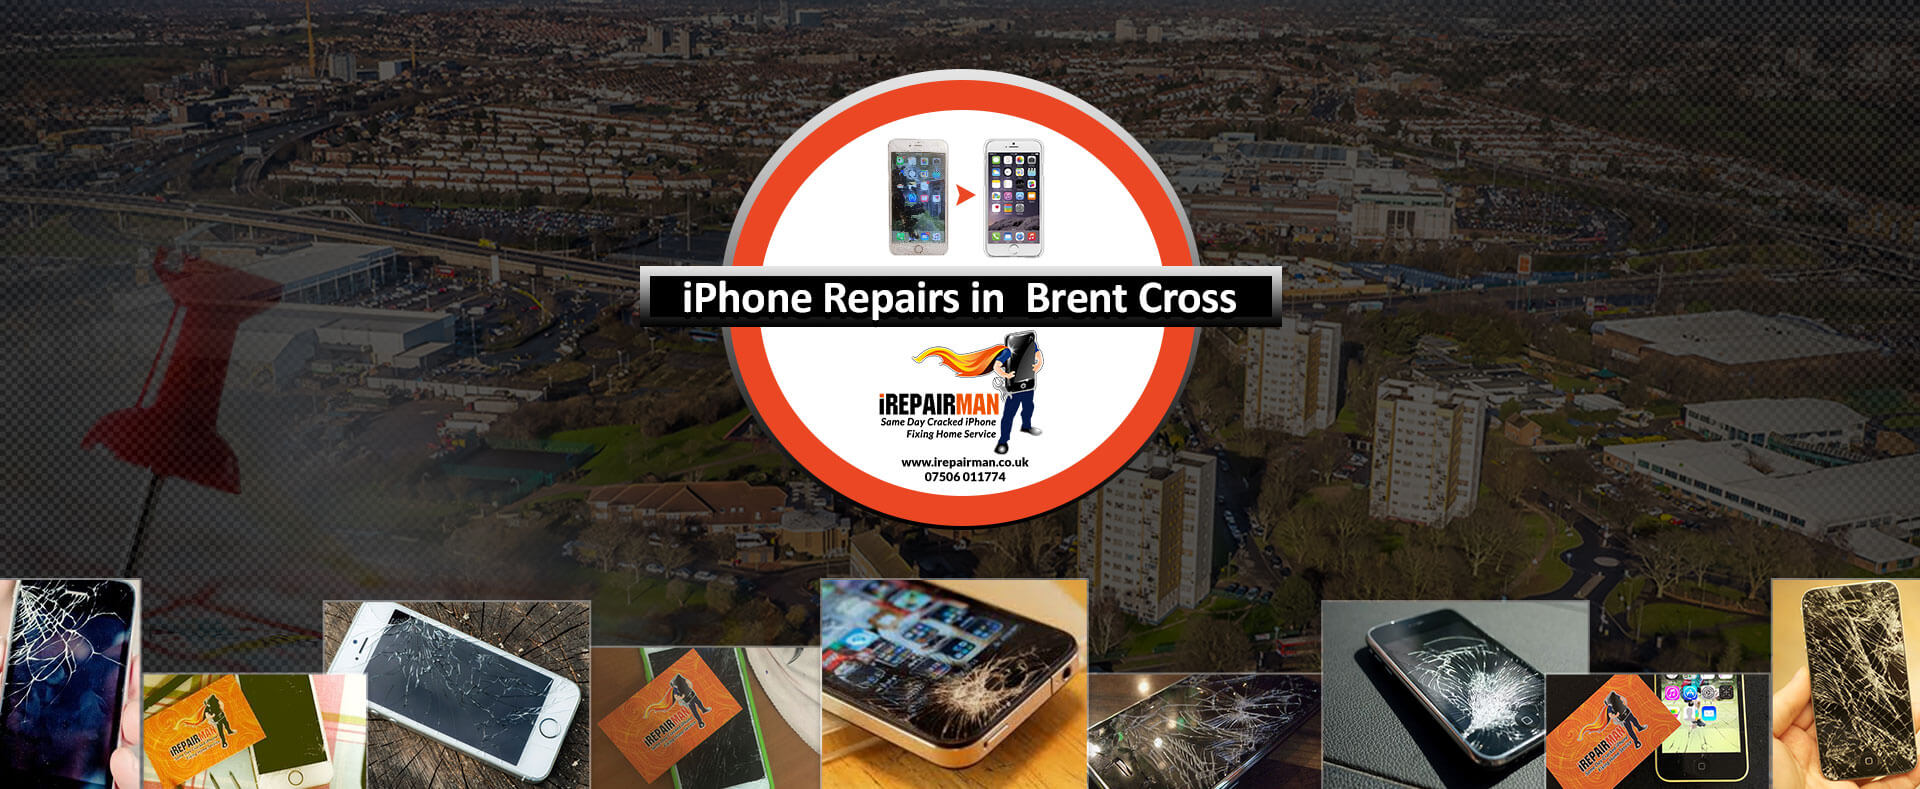 iPhone Repairs in Brent Cross